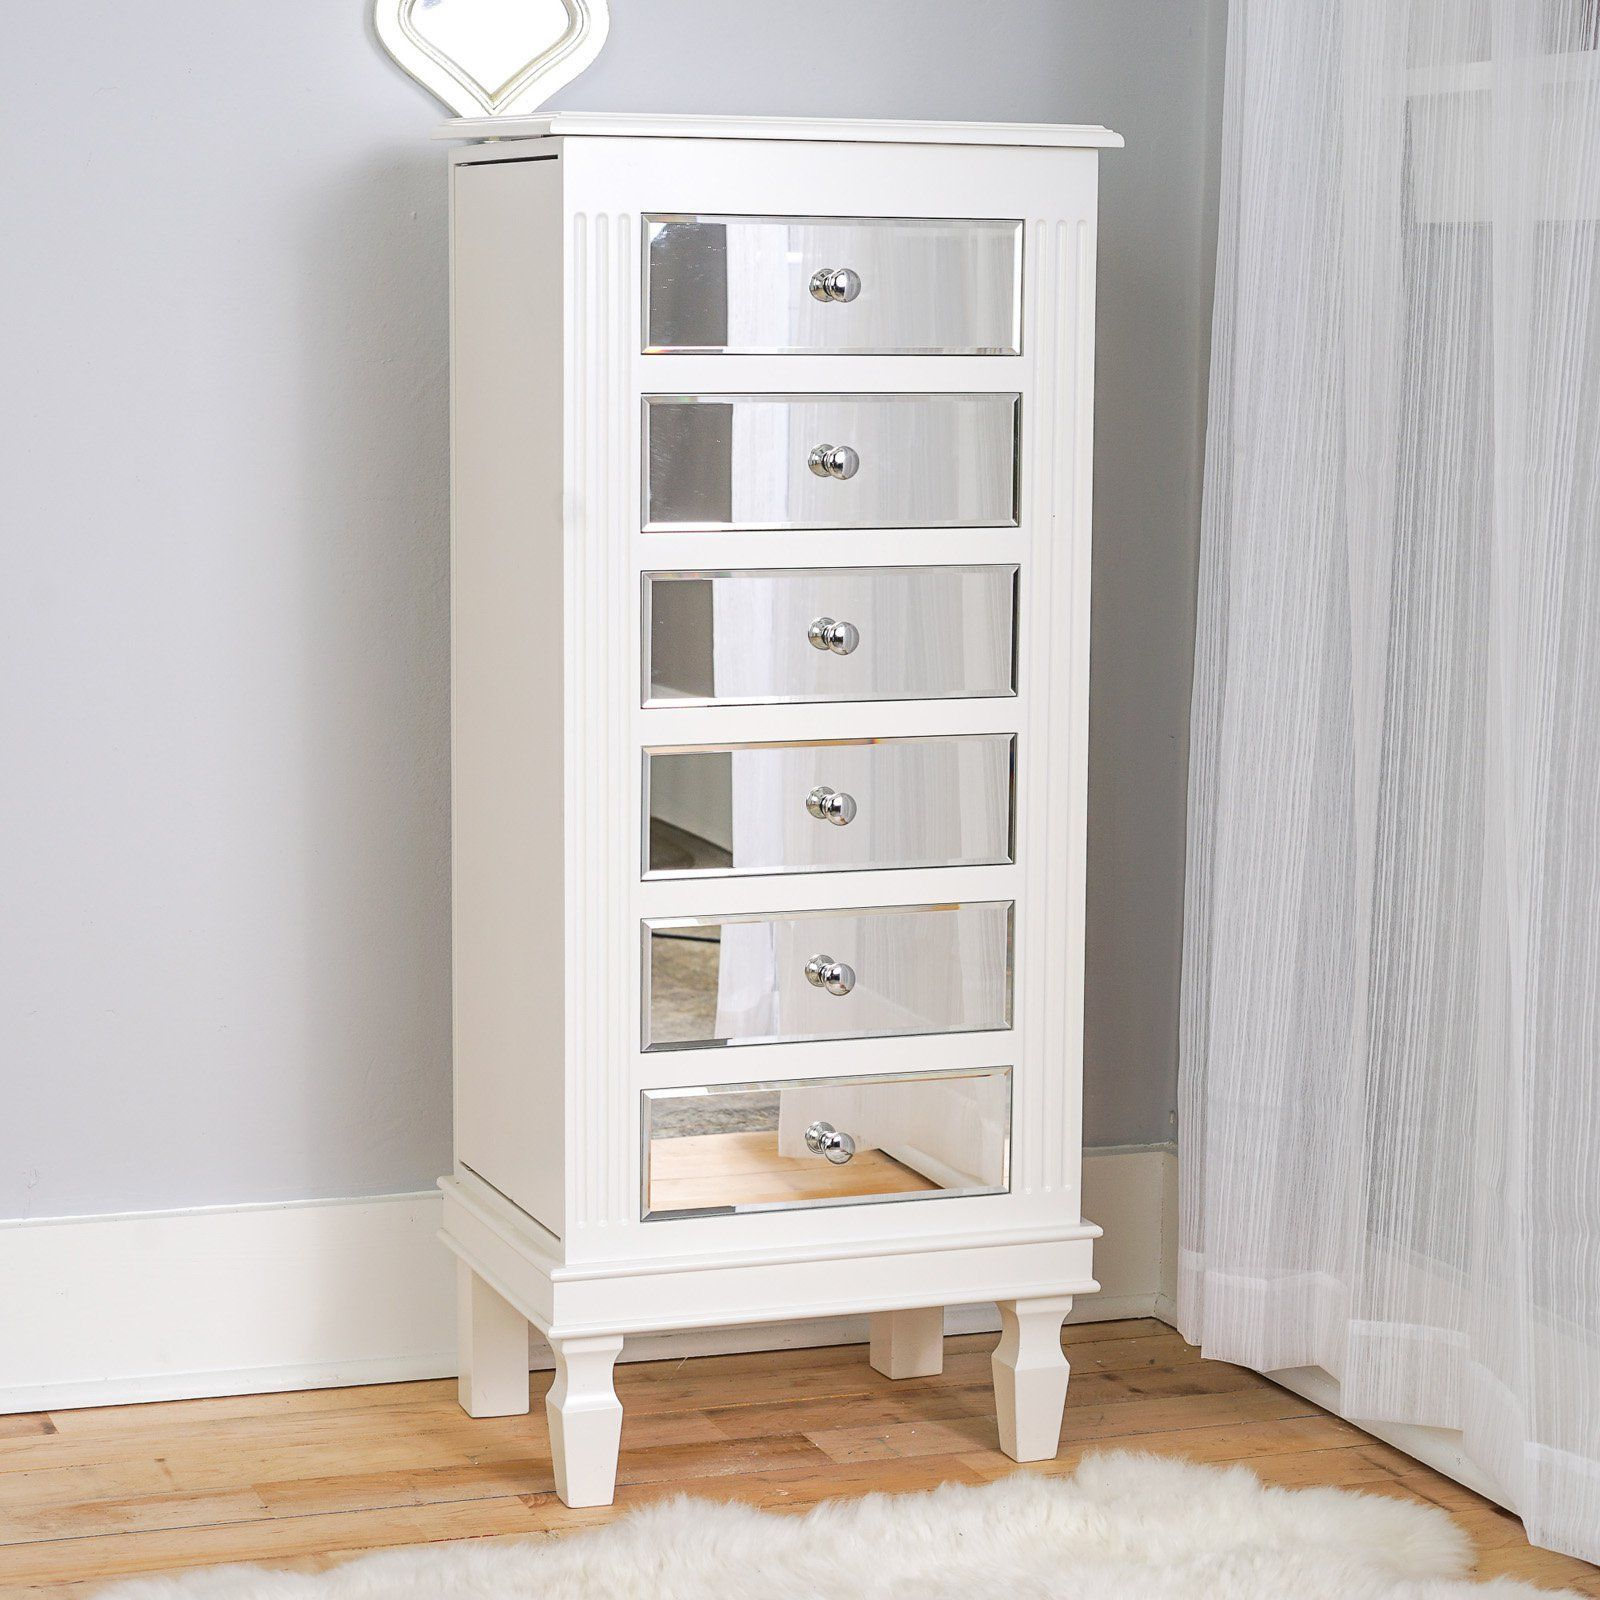 Hives And Honey Ava Jewelry Armoire   White | From Hayneedle.com